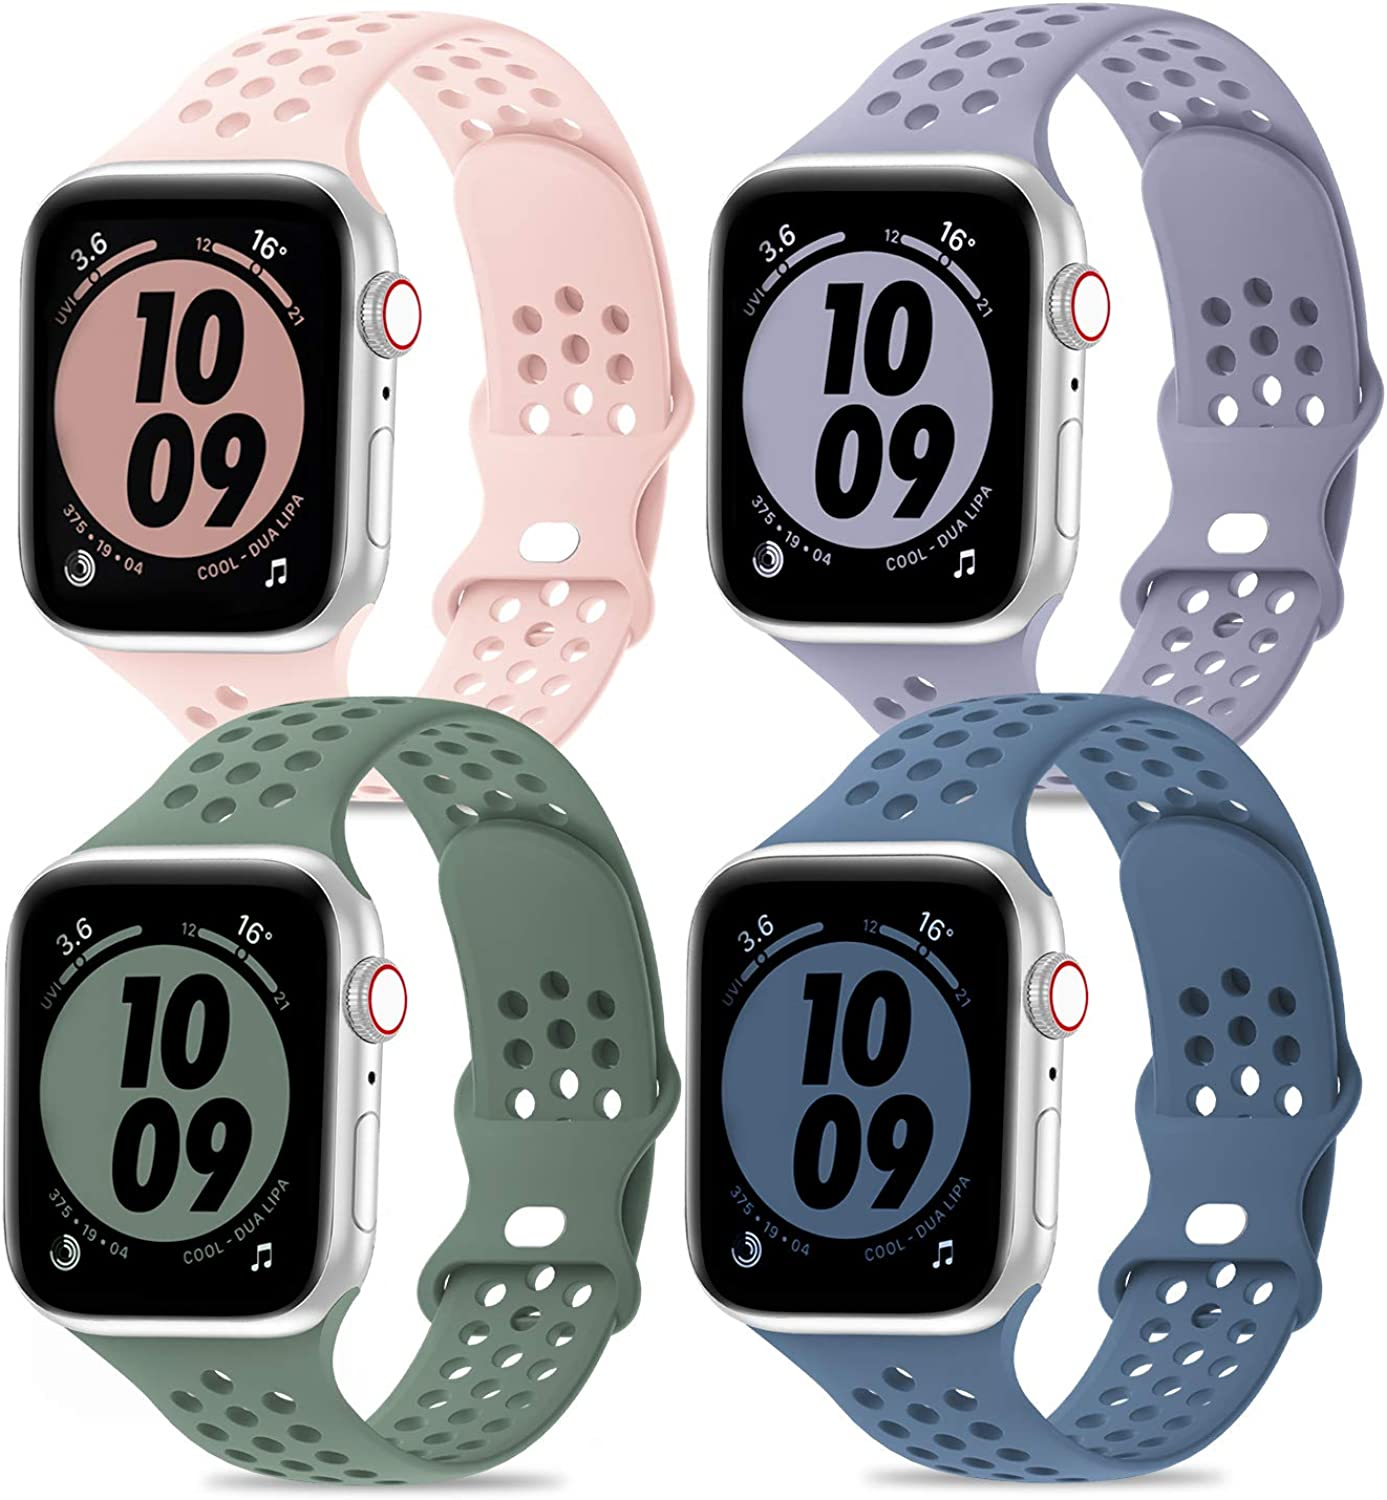 iWabcertoo Compatible with Apple Watch Bands 38mm 40mm 42mm 44mm,4 Packs Sport Breathable Soft Silicone Replacement Straps Compatible for iWatch Series SE 6 5 4 3 2 1 Sport Edition Women Men